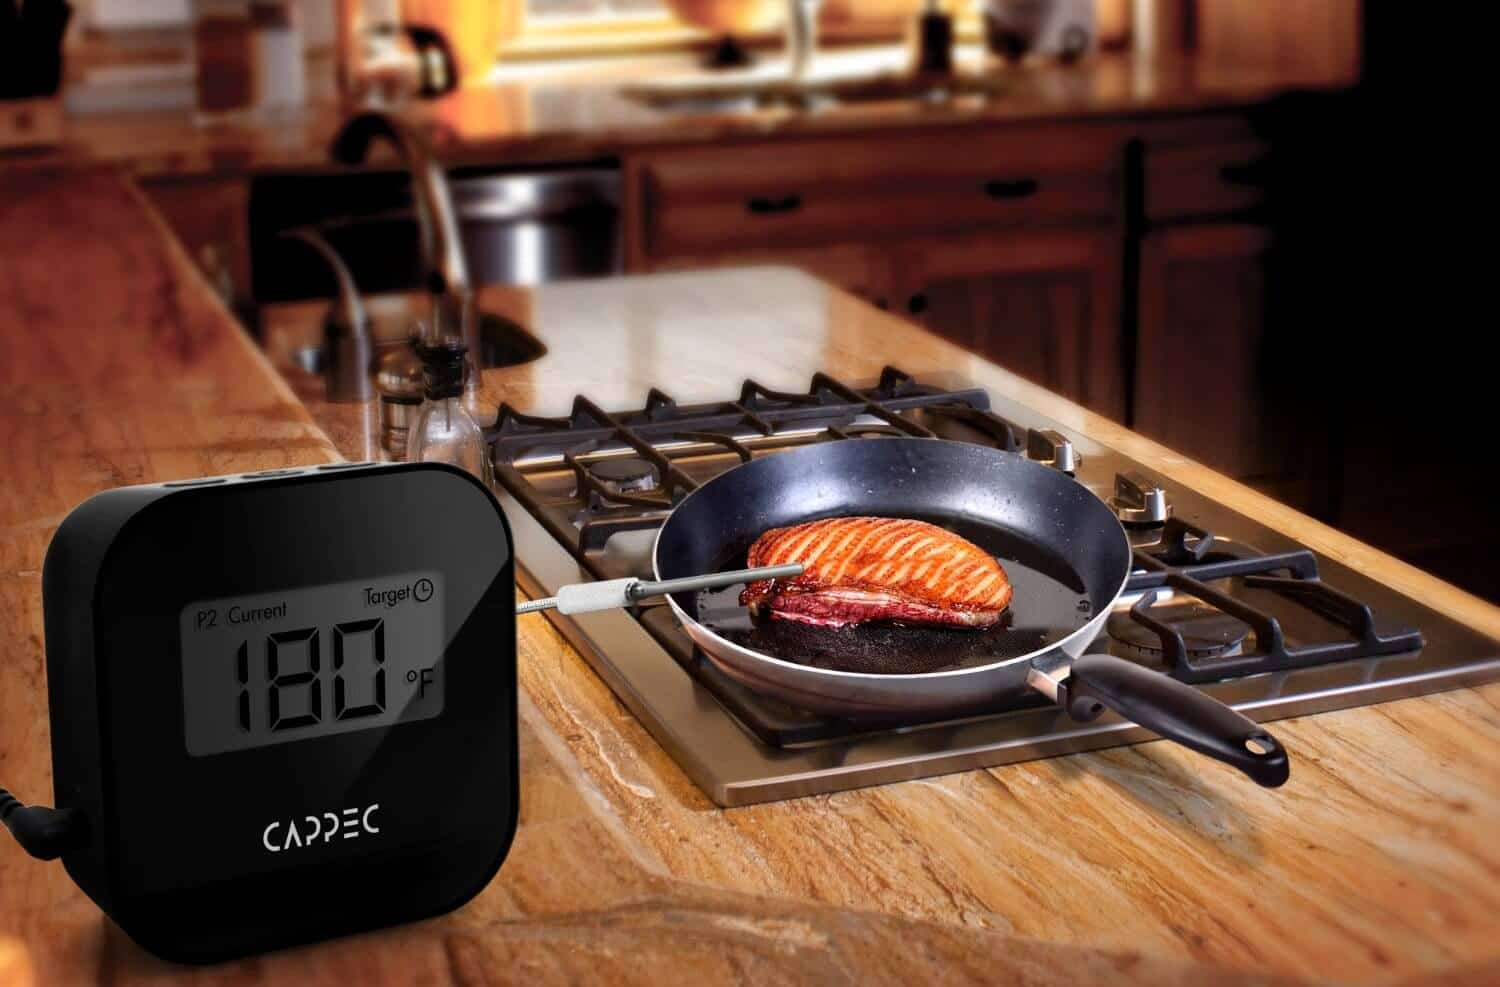 Cappec Bluetooth BBQ Thermometer Review & Giveaway